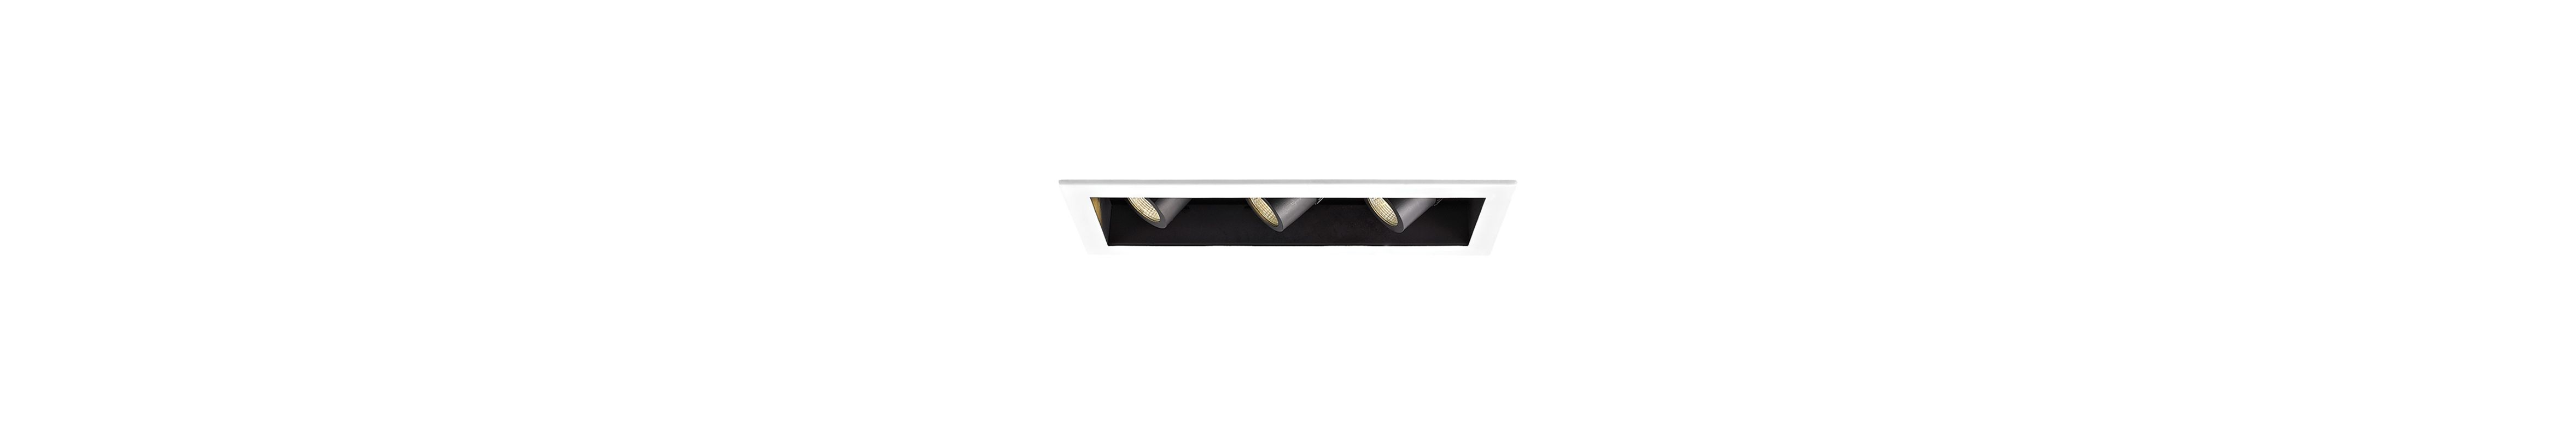 "WAC Lighting MT-4LD316N-F30 4"" Trim 3000K High Output LED Recessed"